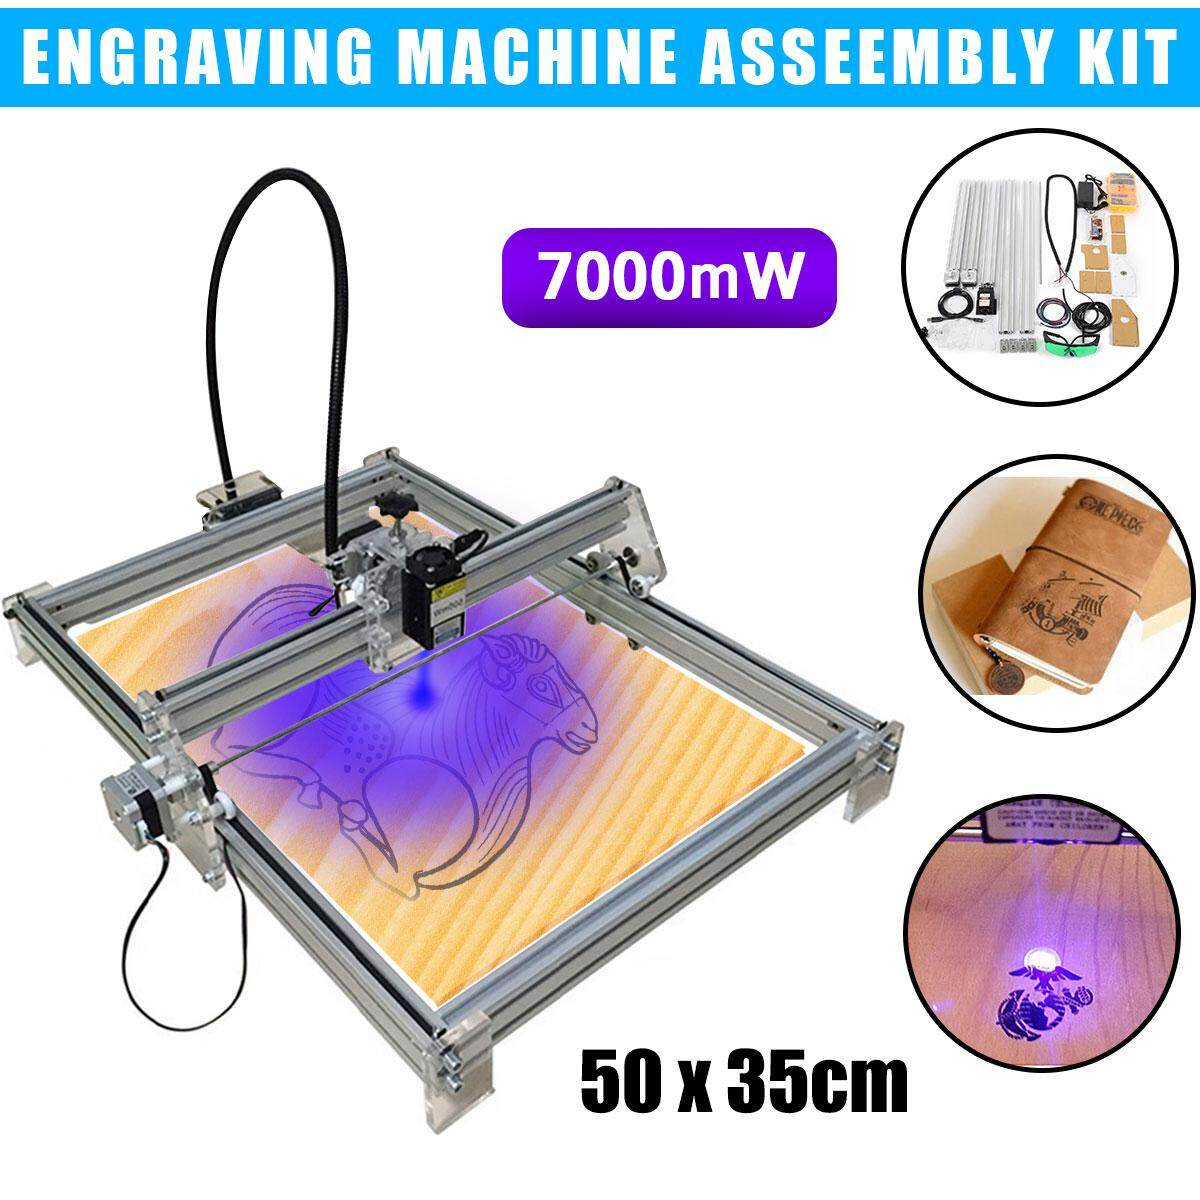 【Free Shipping + Flash Deal】7000mW 35x50cm USB CNC Laser Engraver Metal Marking Wood Cutter Machine DIY Kit